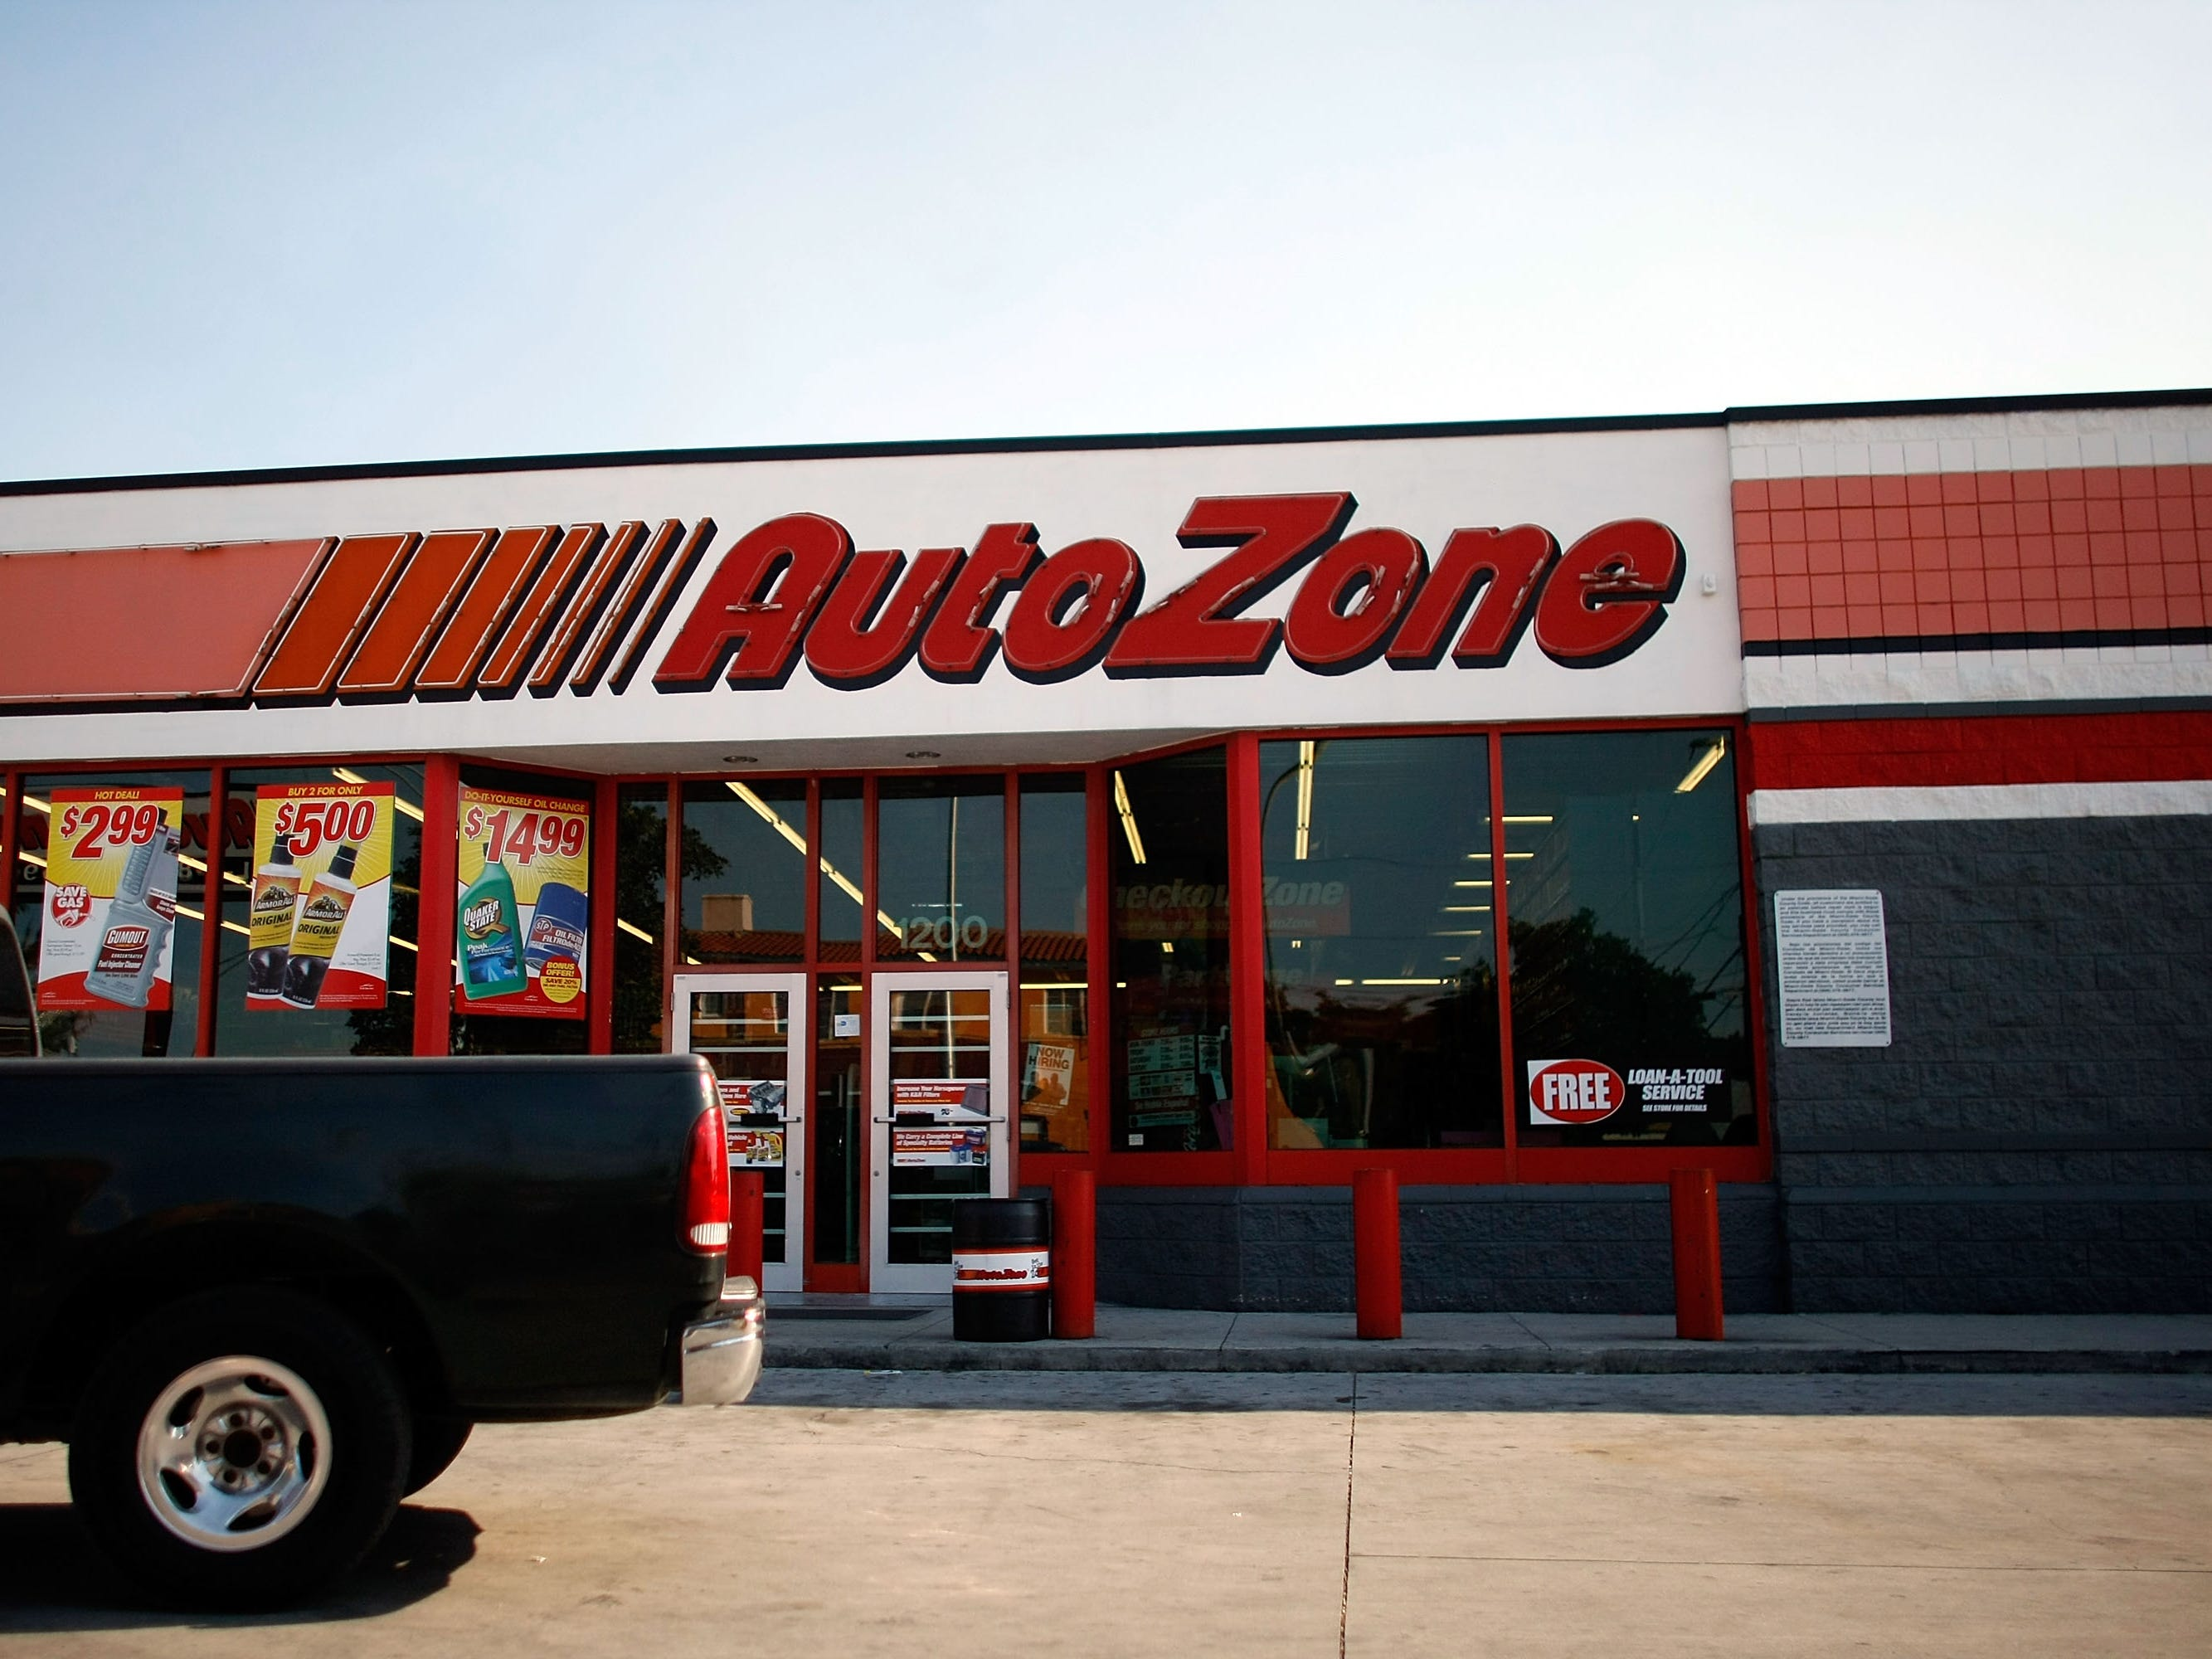 AutoZone, hiring 200. The auto parts company has jobs ranging from shift supervisor to retail sales associate. More info: careers.autozone.com.